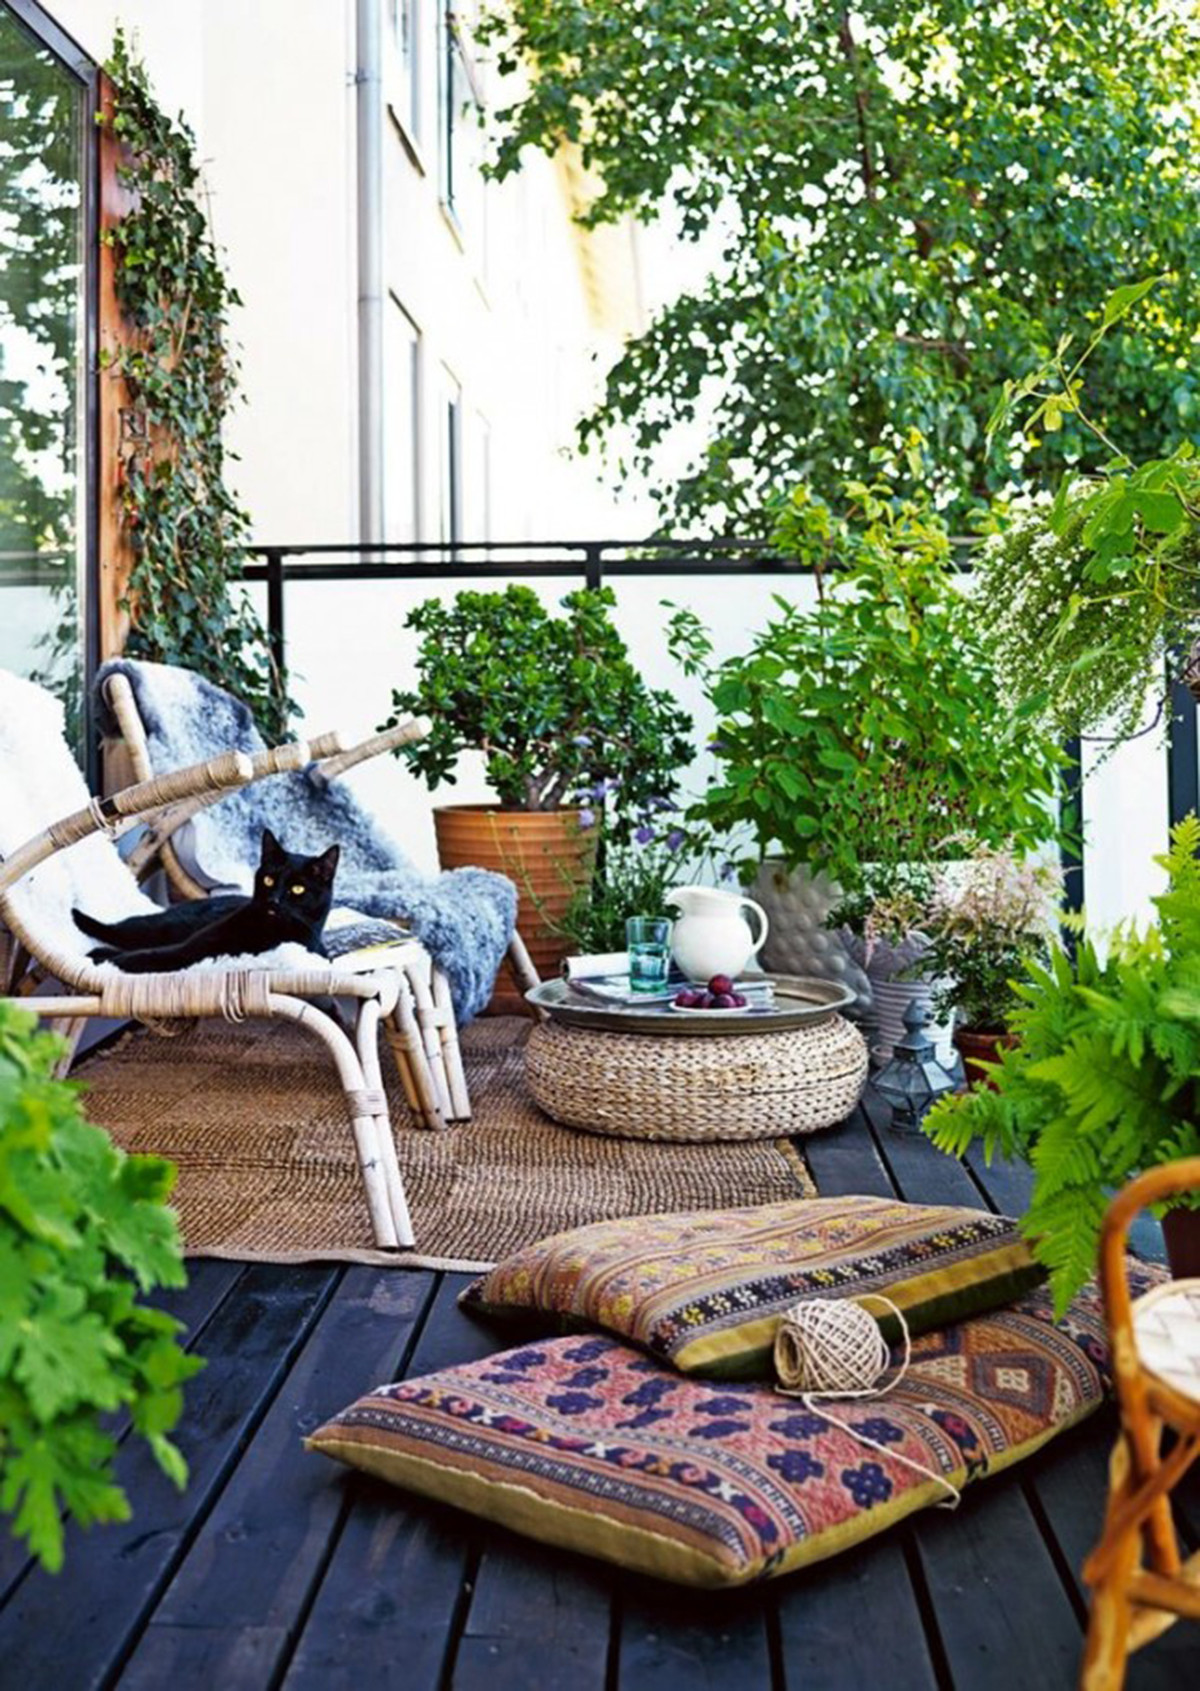 Small Balcony Apartment Rustic: 50 Best Balcony Garden Ideas And Designs For 2019